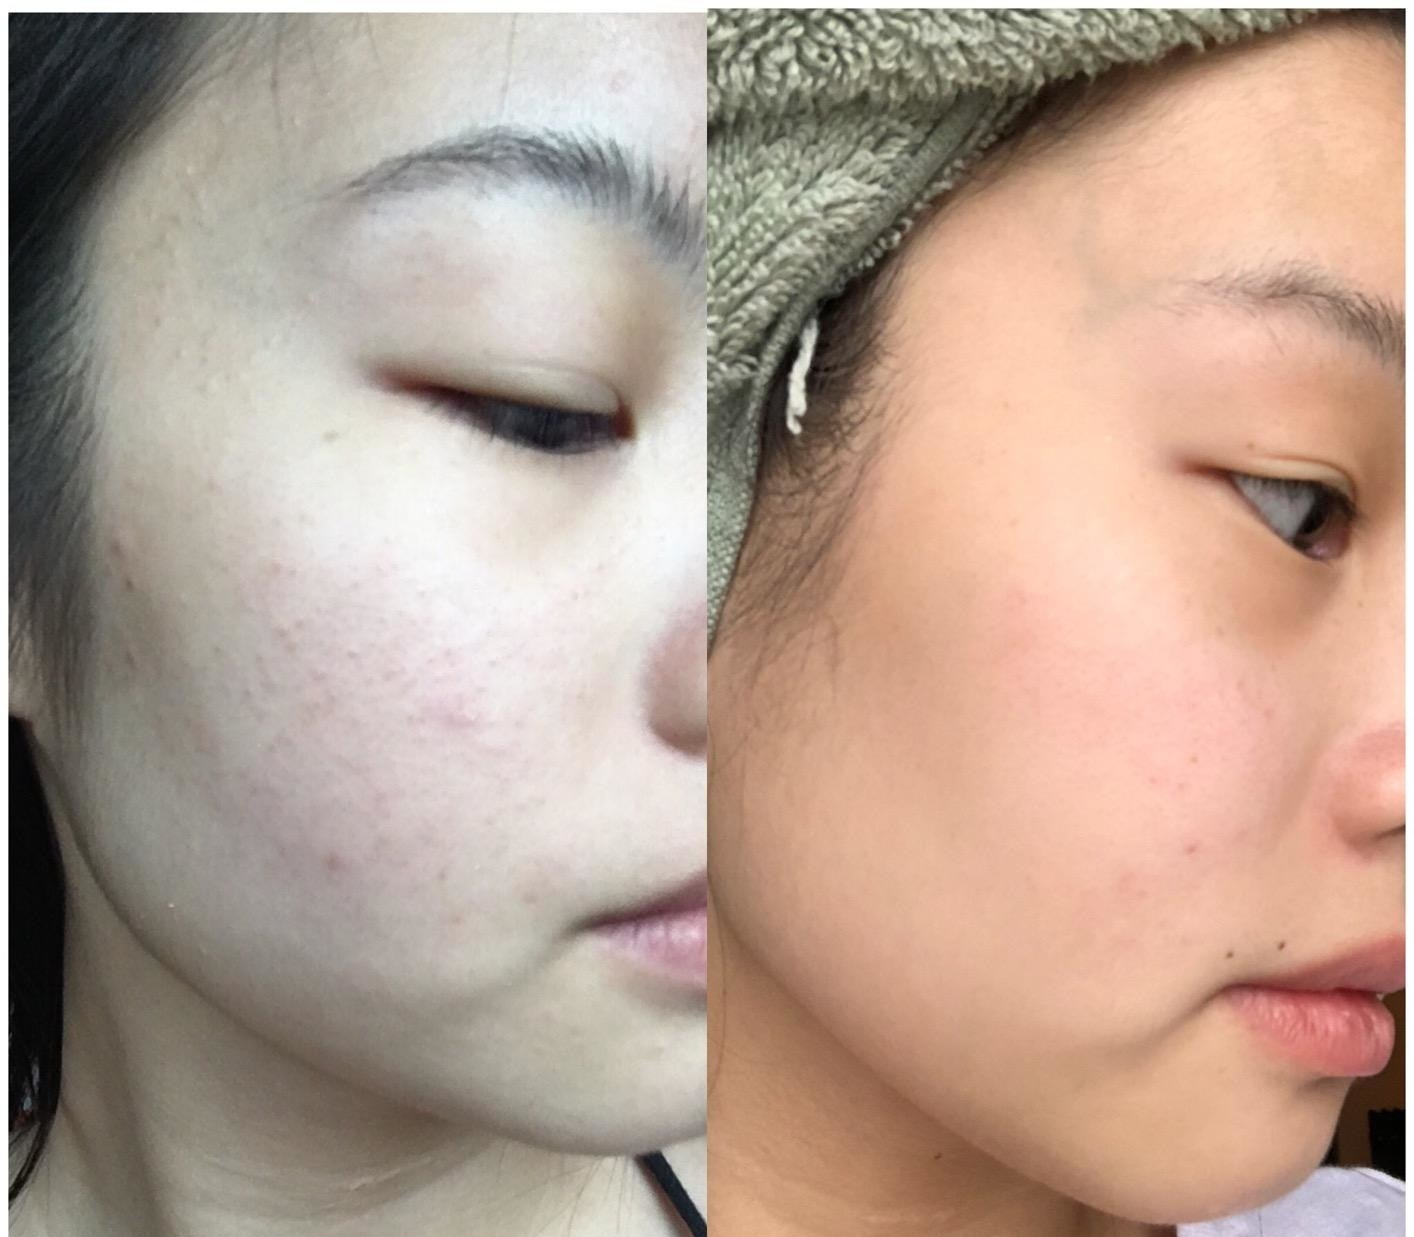 A two-paneled reviewer photo showing a face with red acne on the cheeks on the left, and a face with a clear complexion on the right.